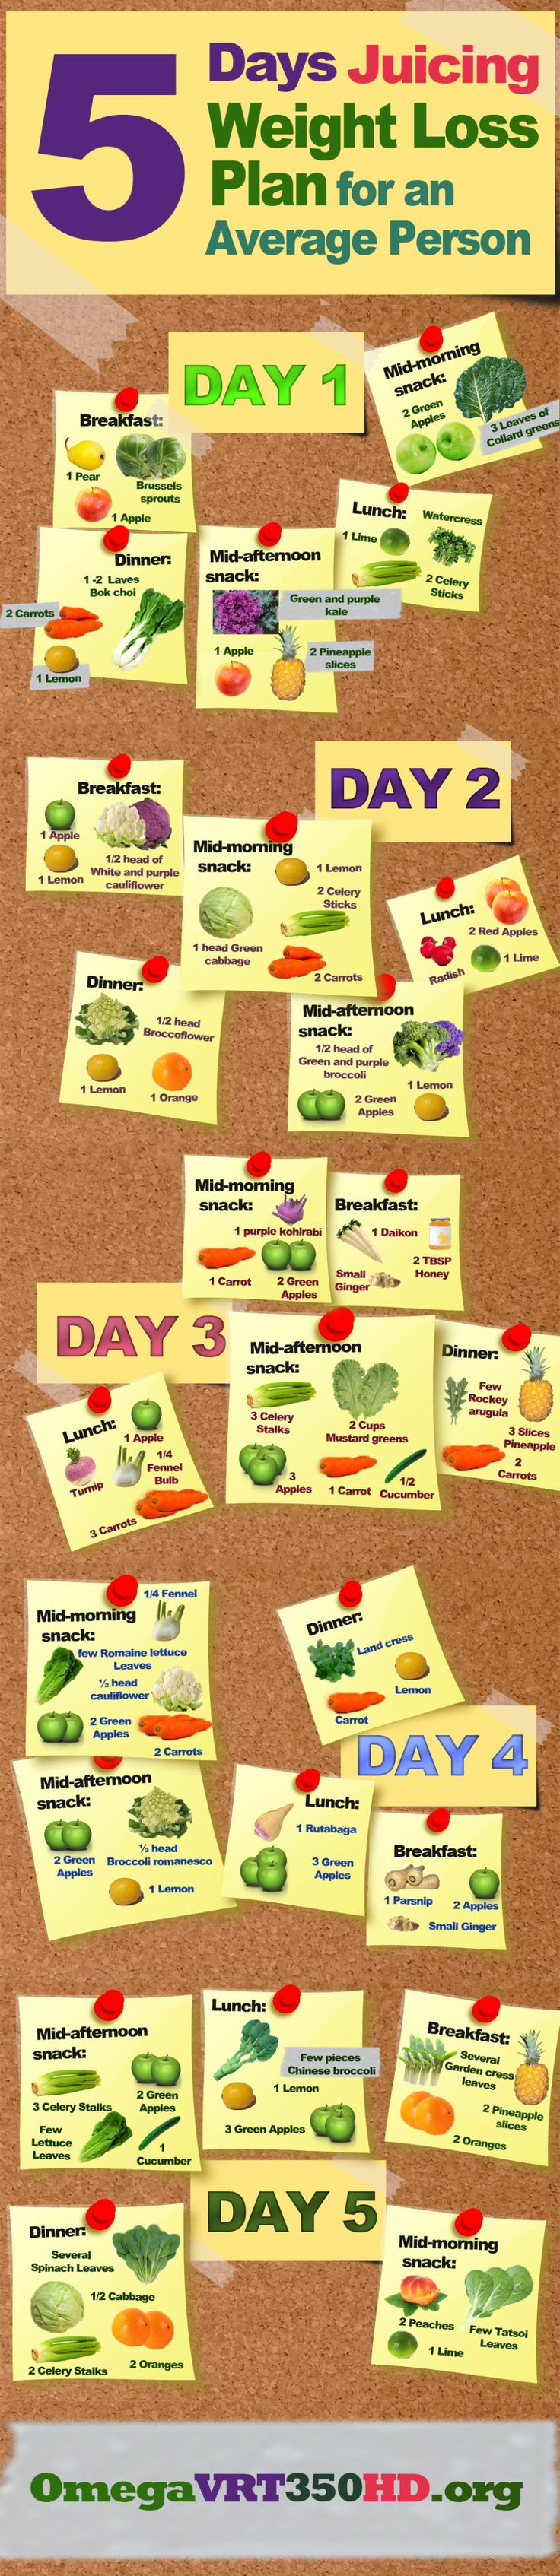 5 Days Simple Juicing Weight Loss Plan http://omegavrt350hd.org/5-days-simple-juicing-weight-loss-plan/